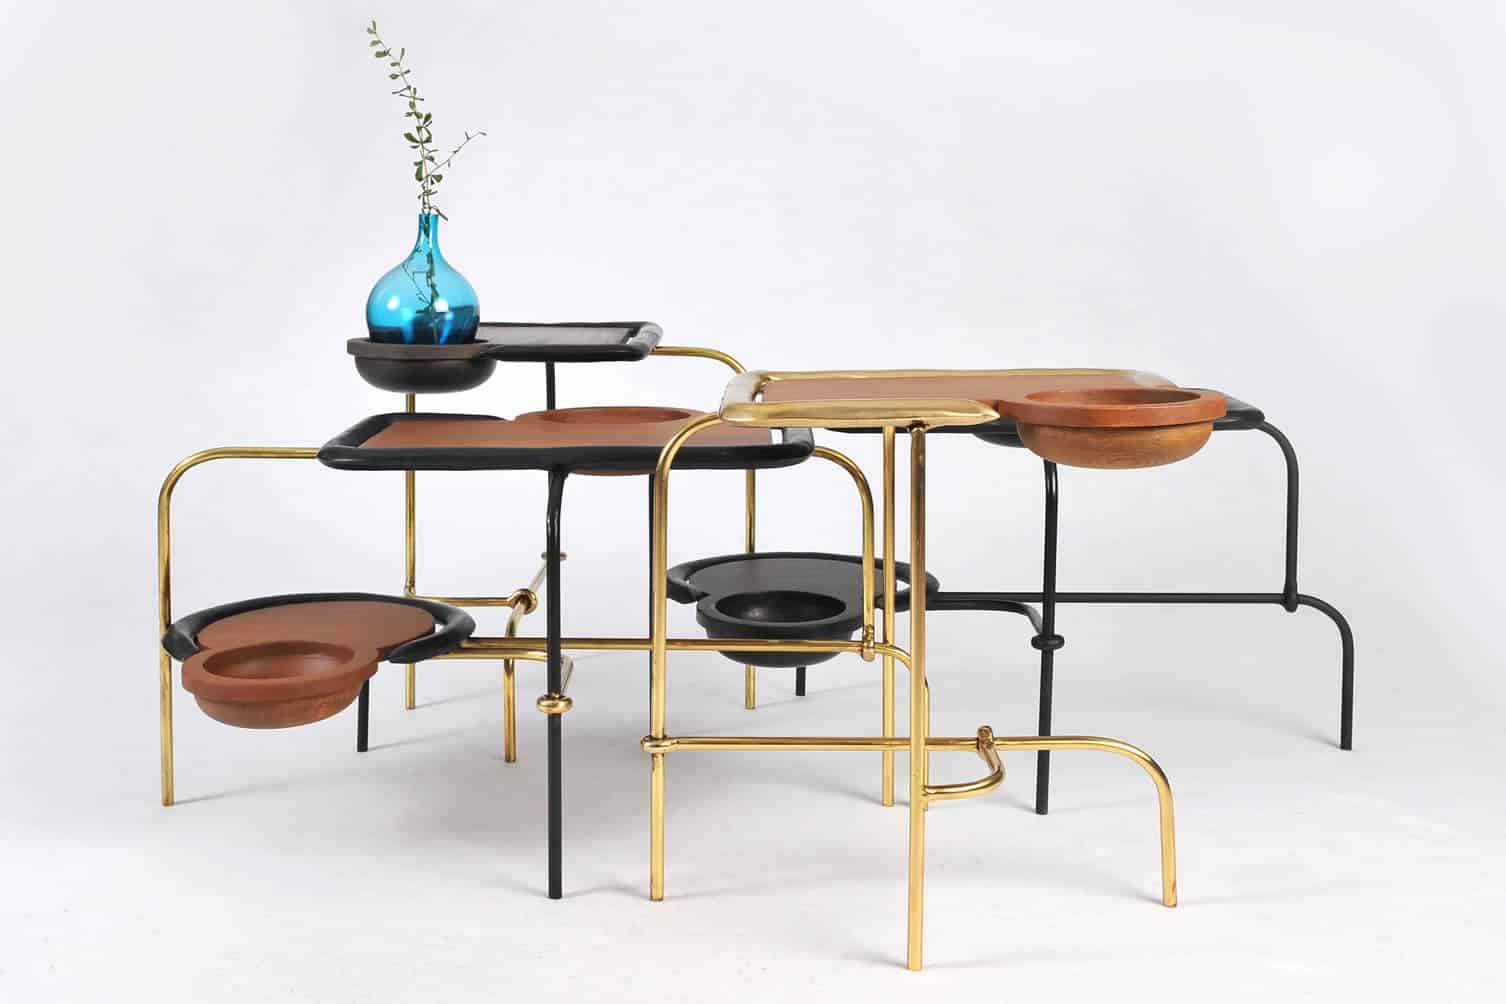 20 Of The Best Award Winning Furniture Designs From The A Design Competition Architecture Lab